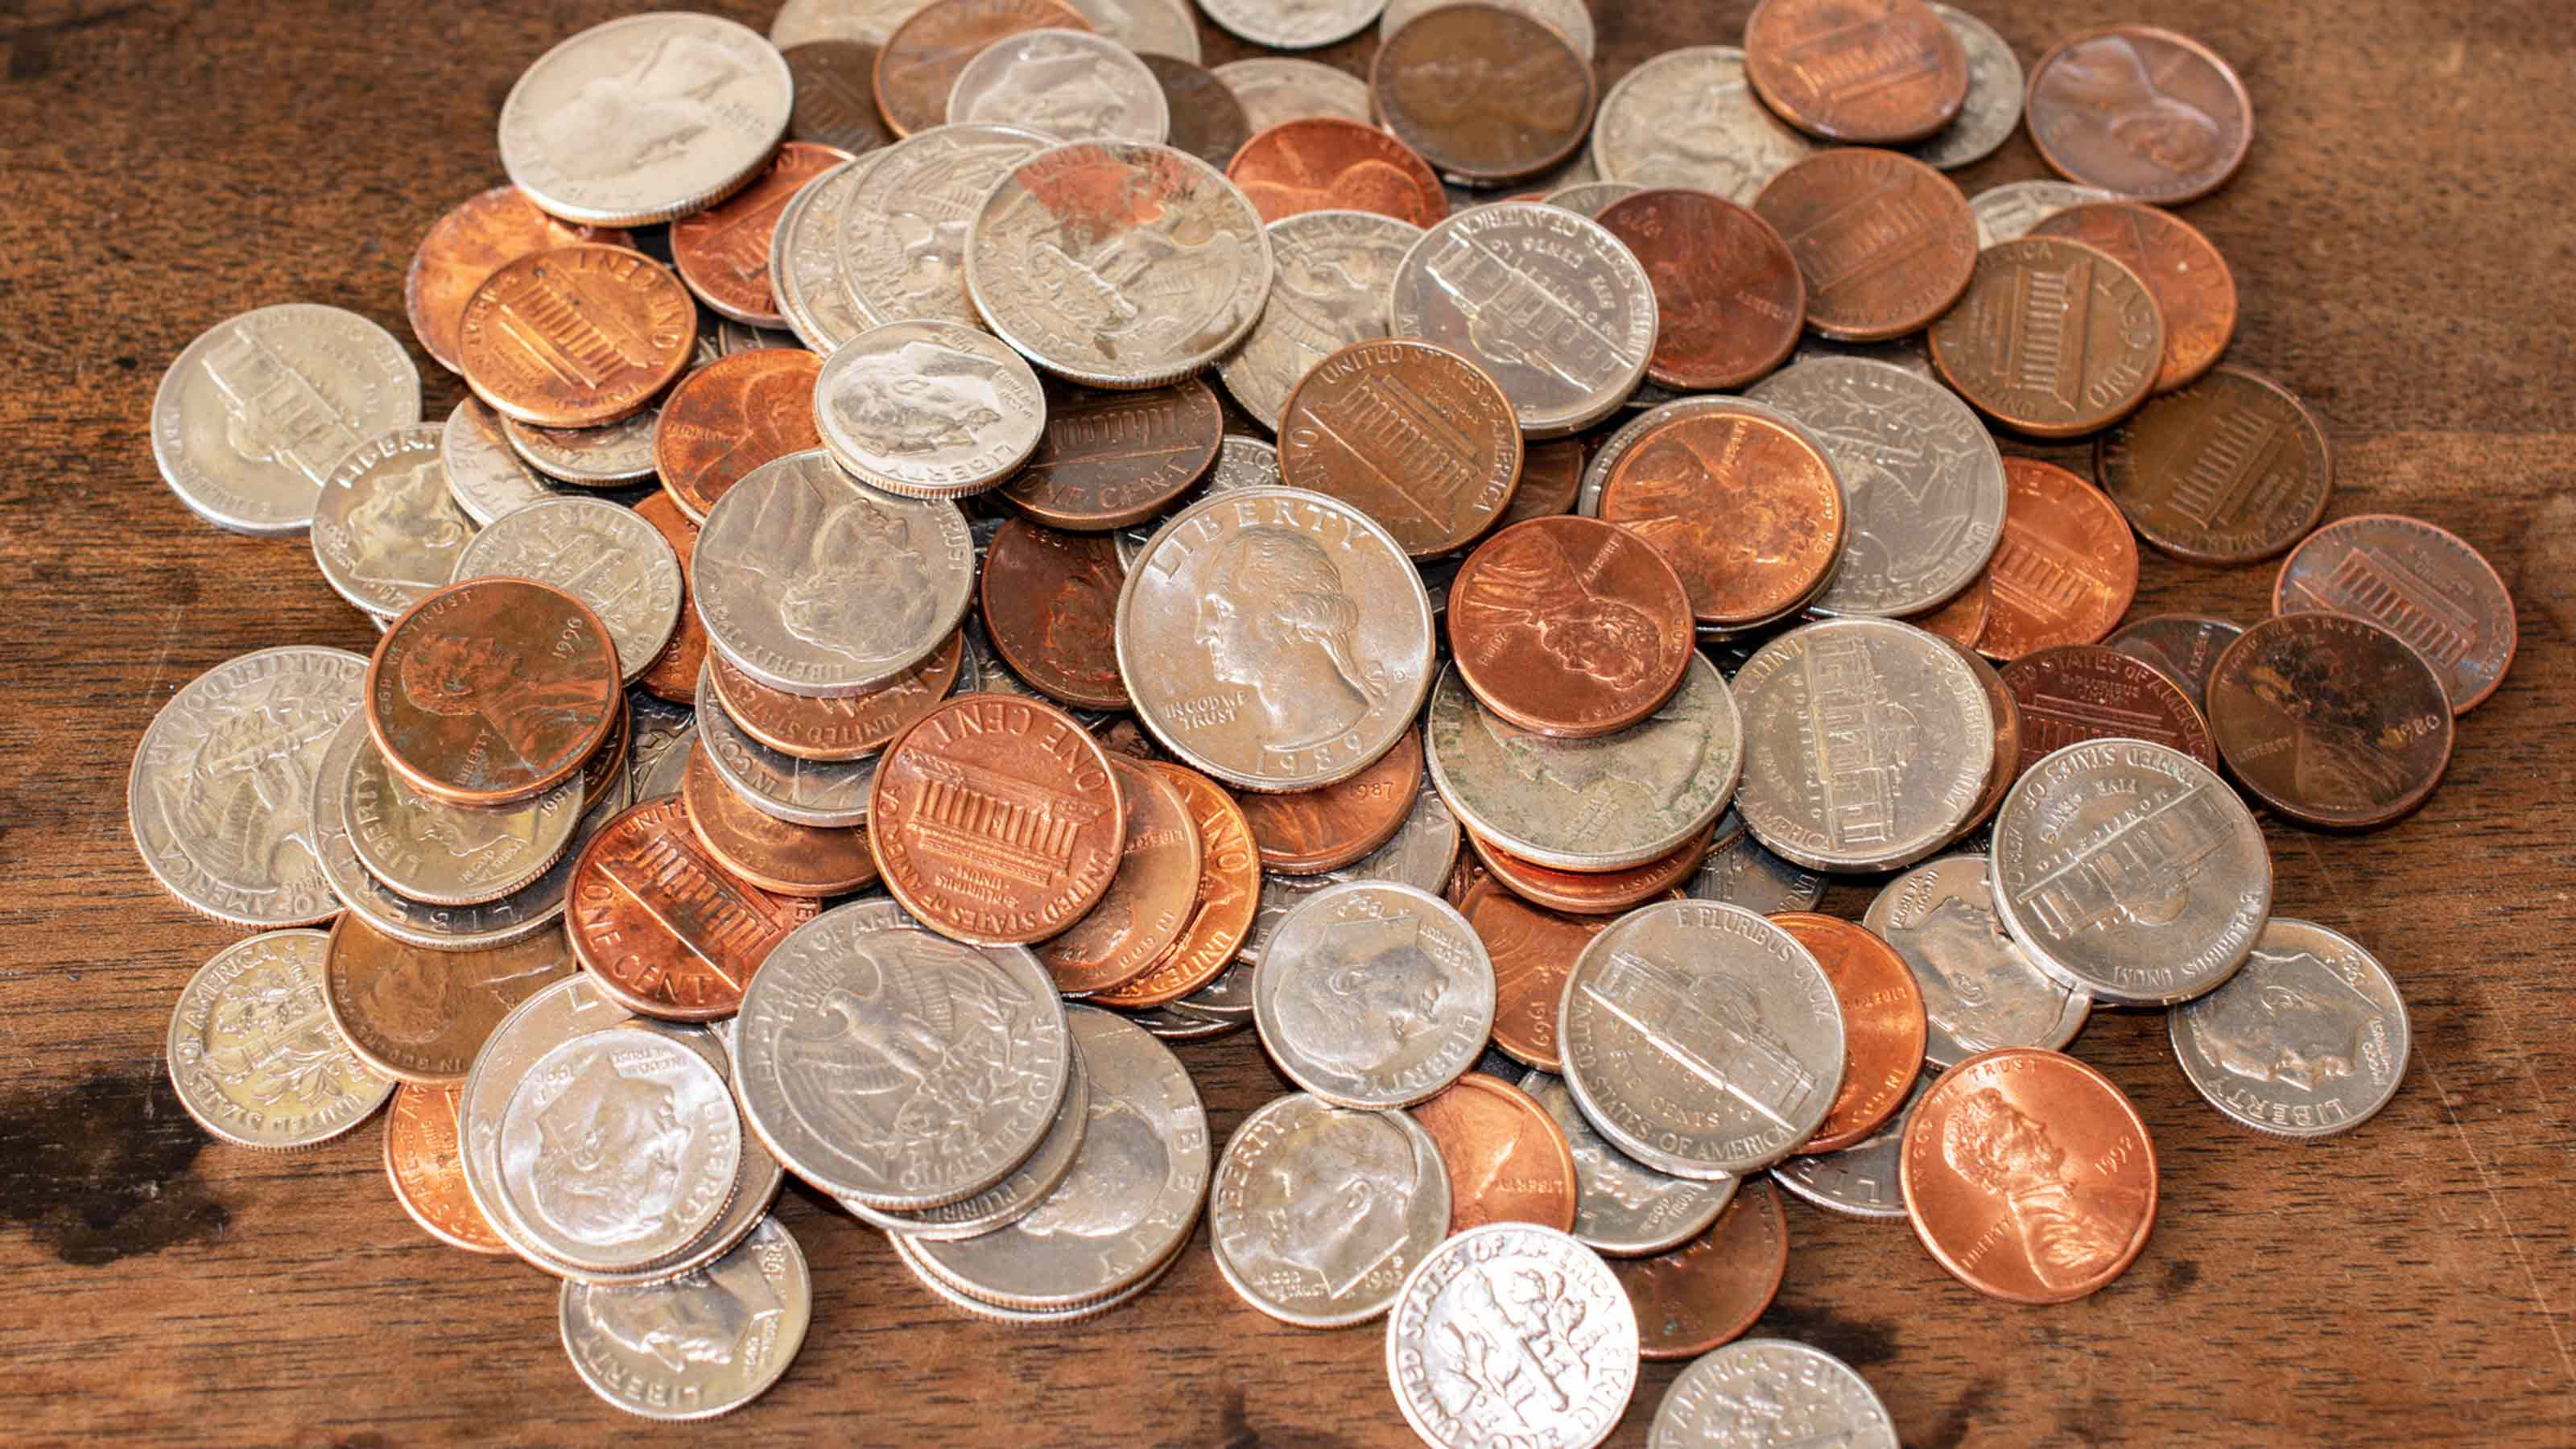 The Coin Shortage How Can You Help Kiplinger